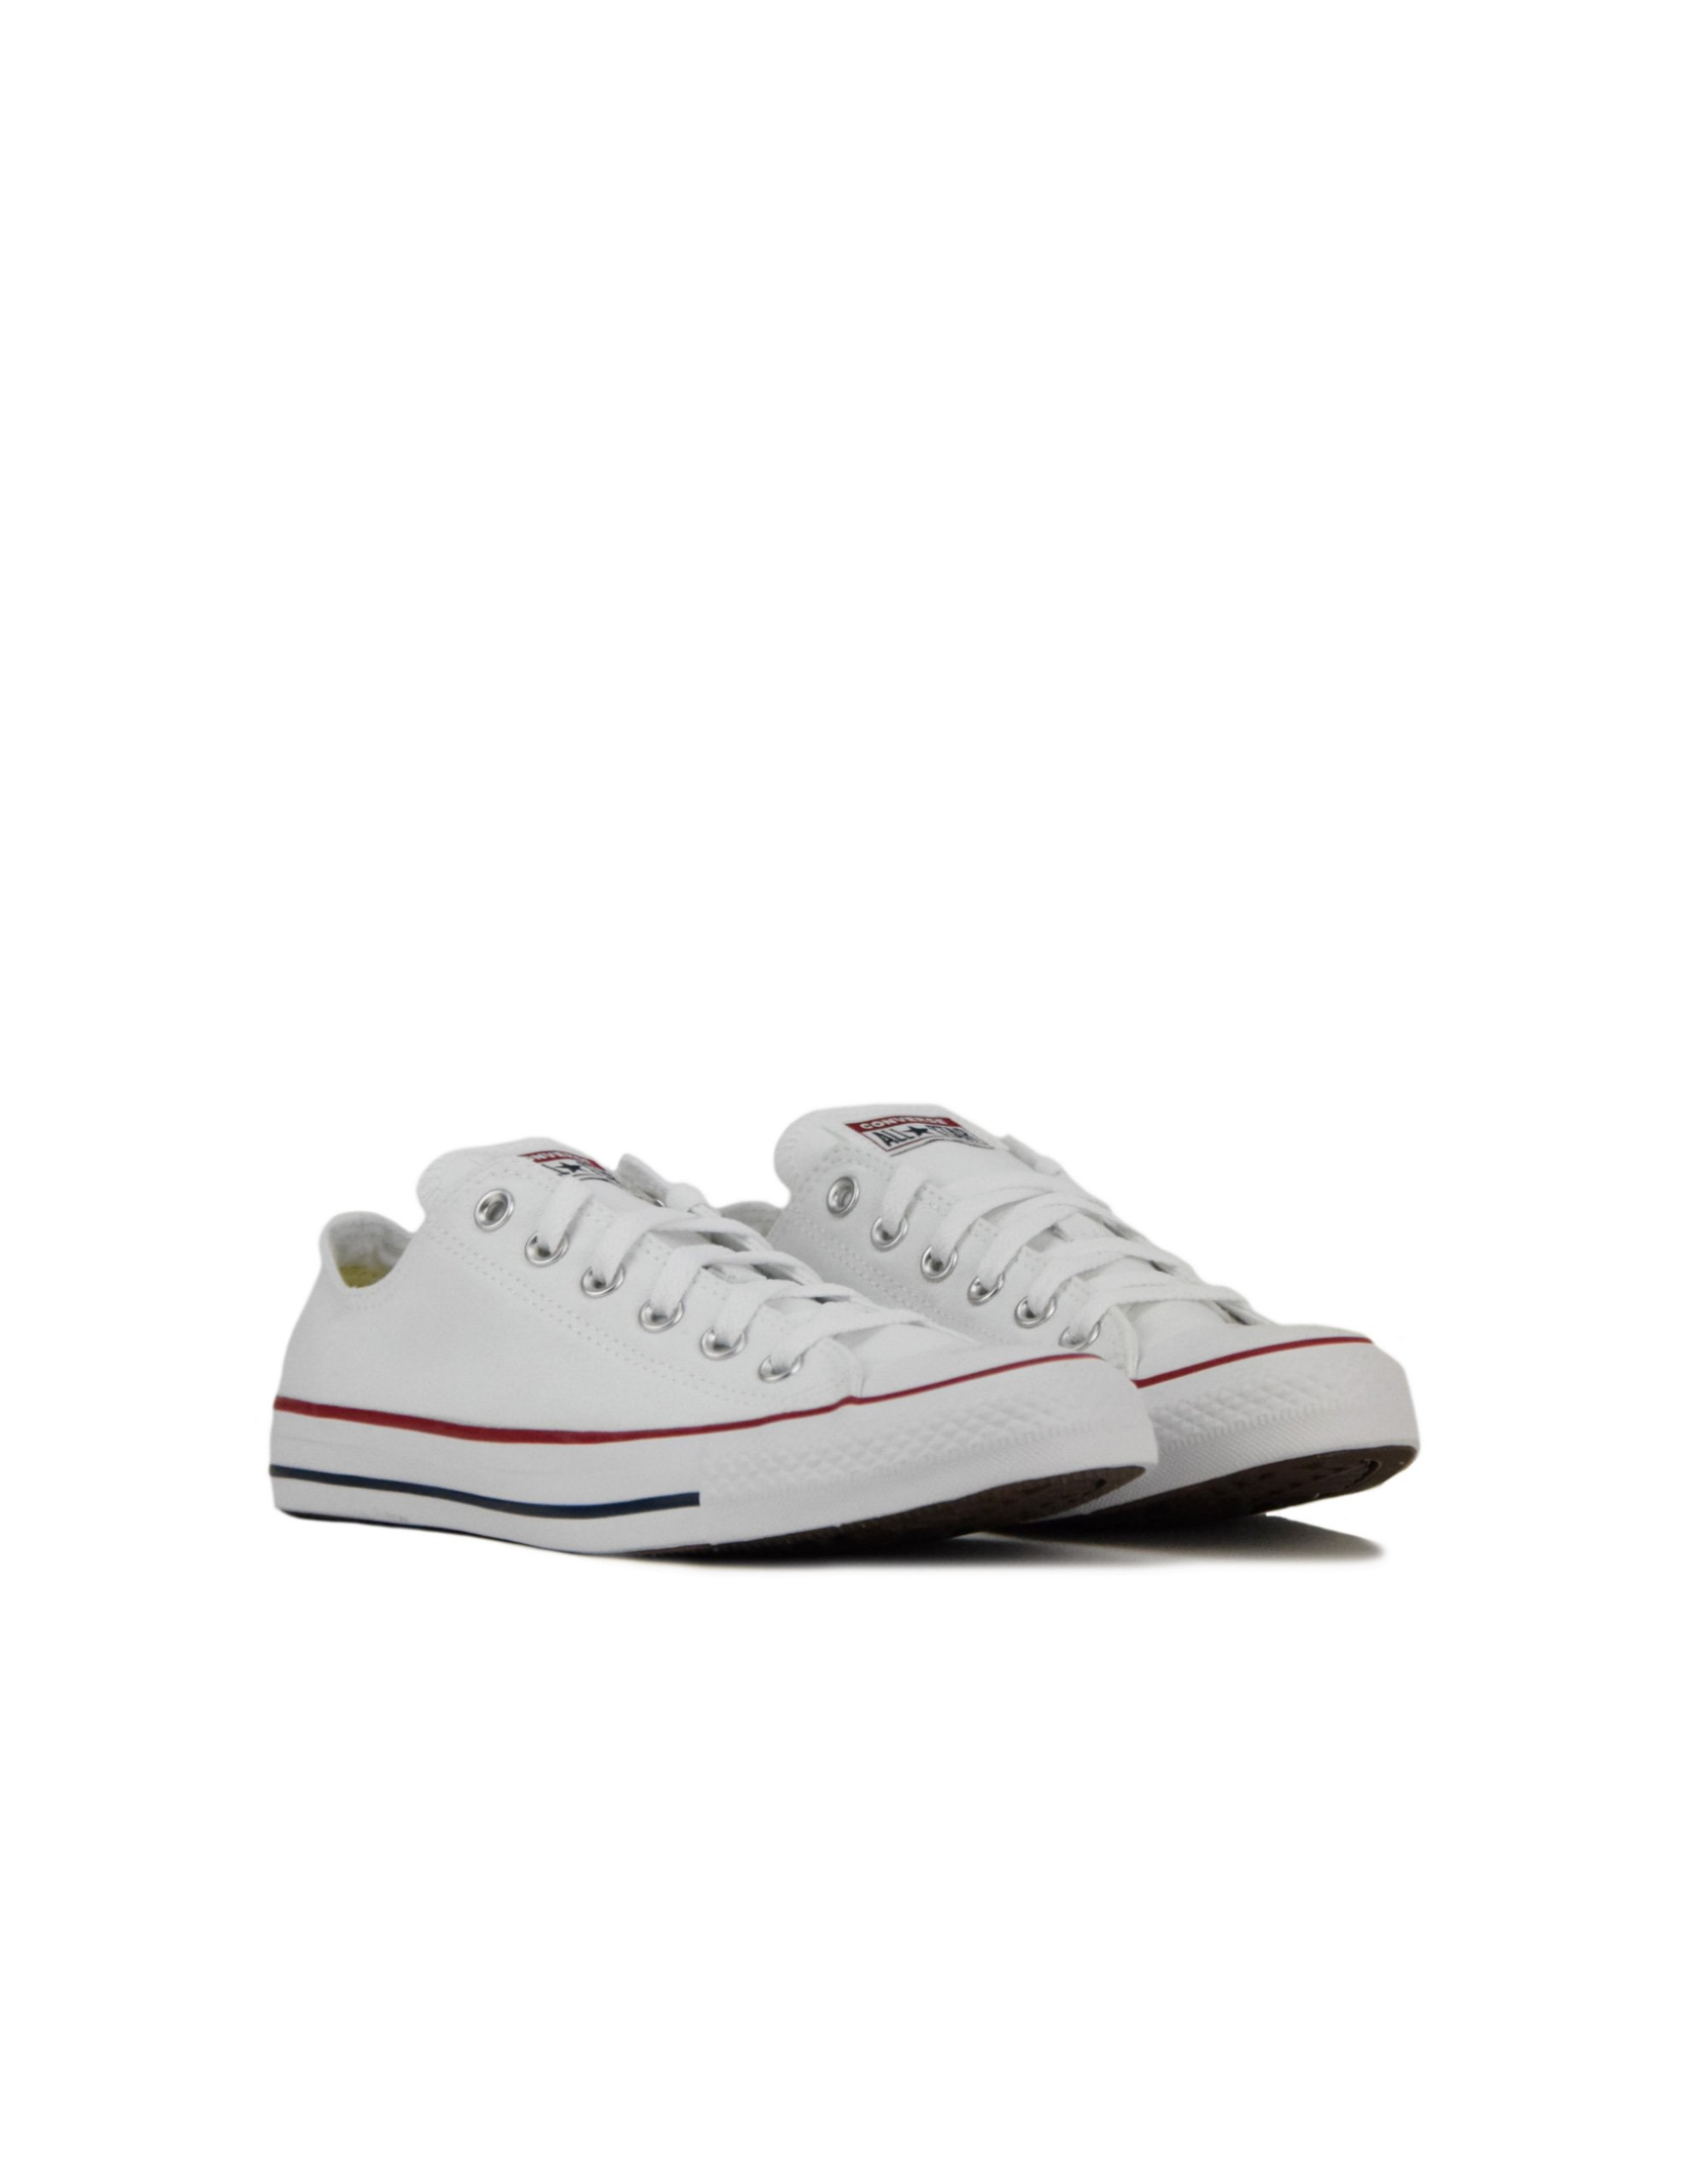 Converse Chuck Taylor All Star OX (M7652) Optical White